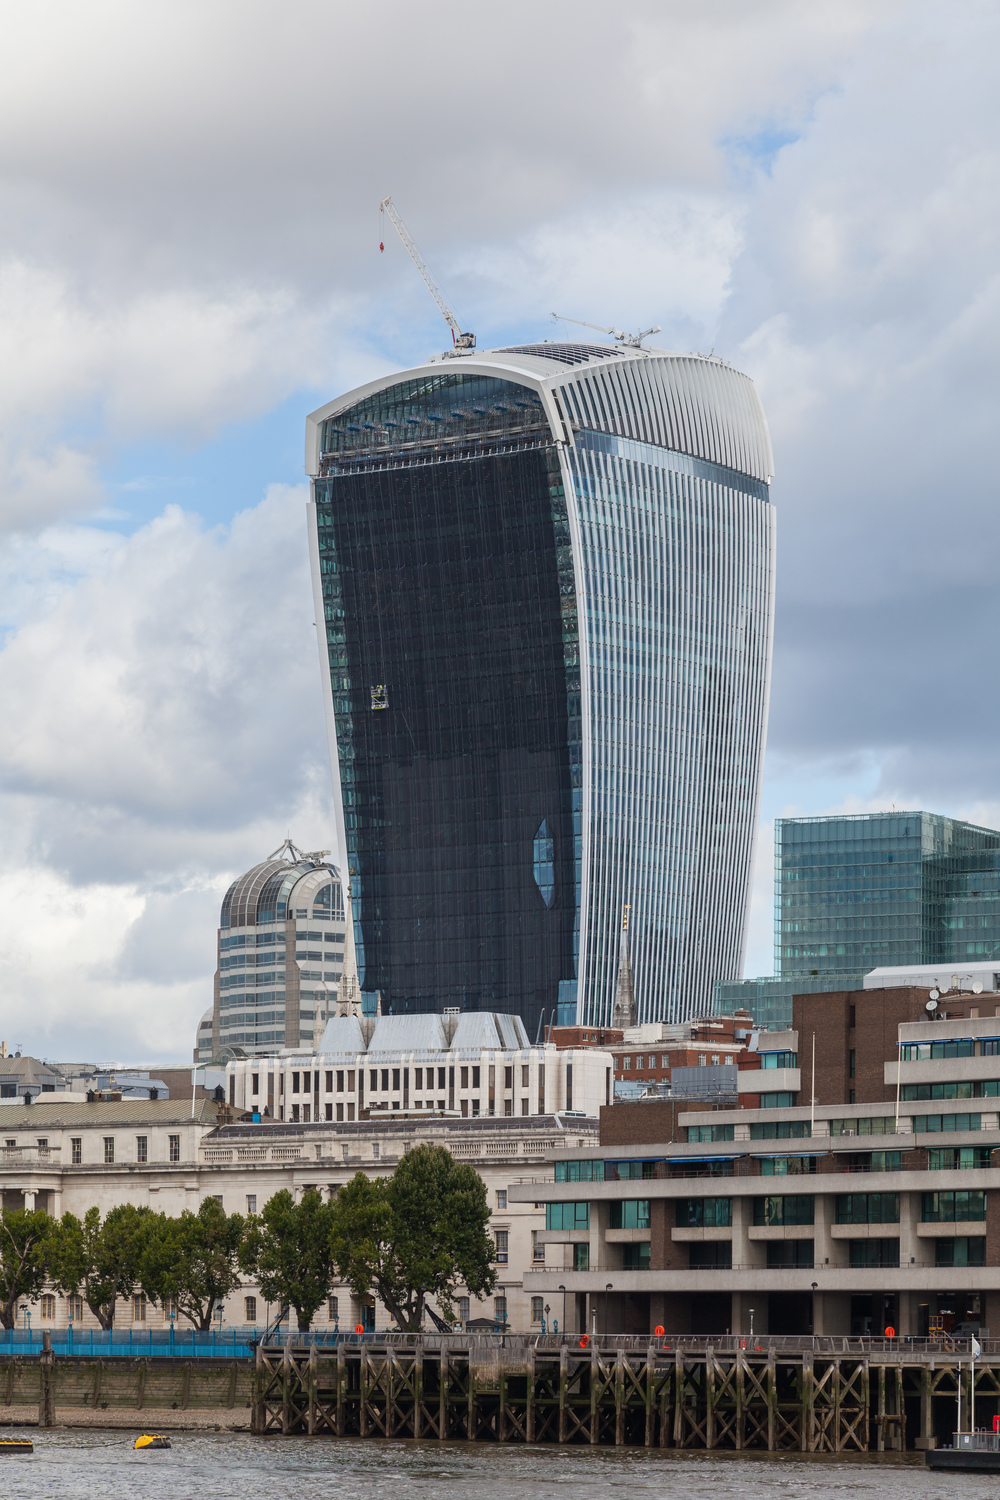 Walkie-Talkie,_Londres,_Inglaterra,_2014-08-11,_DD_098.JPG